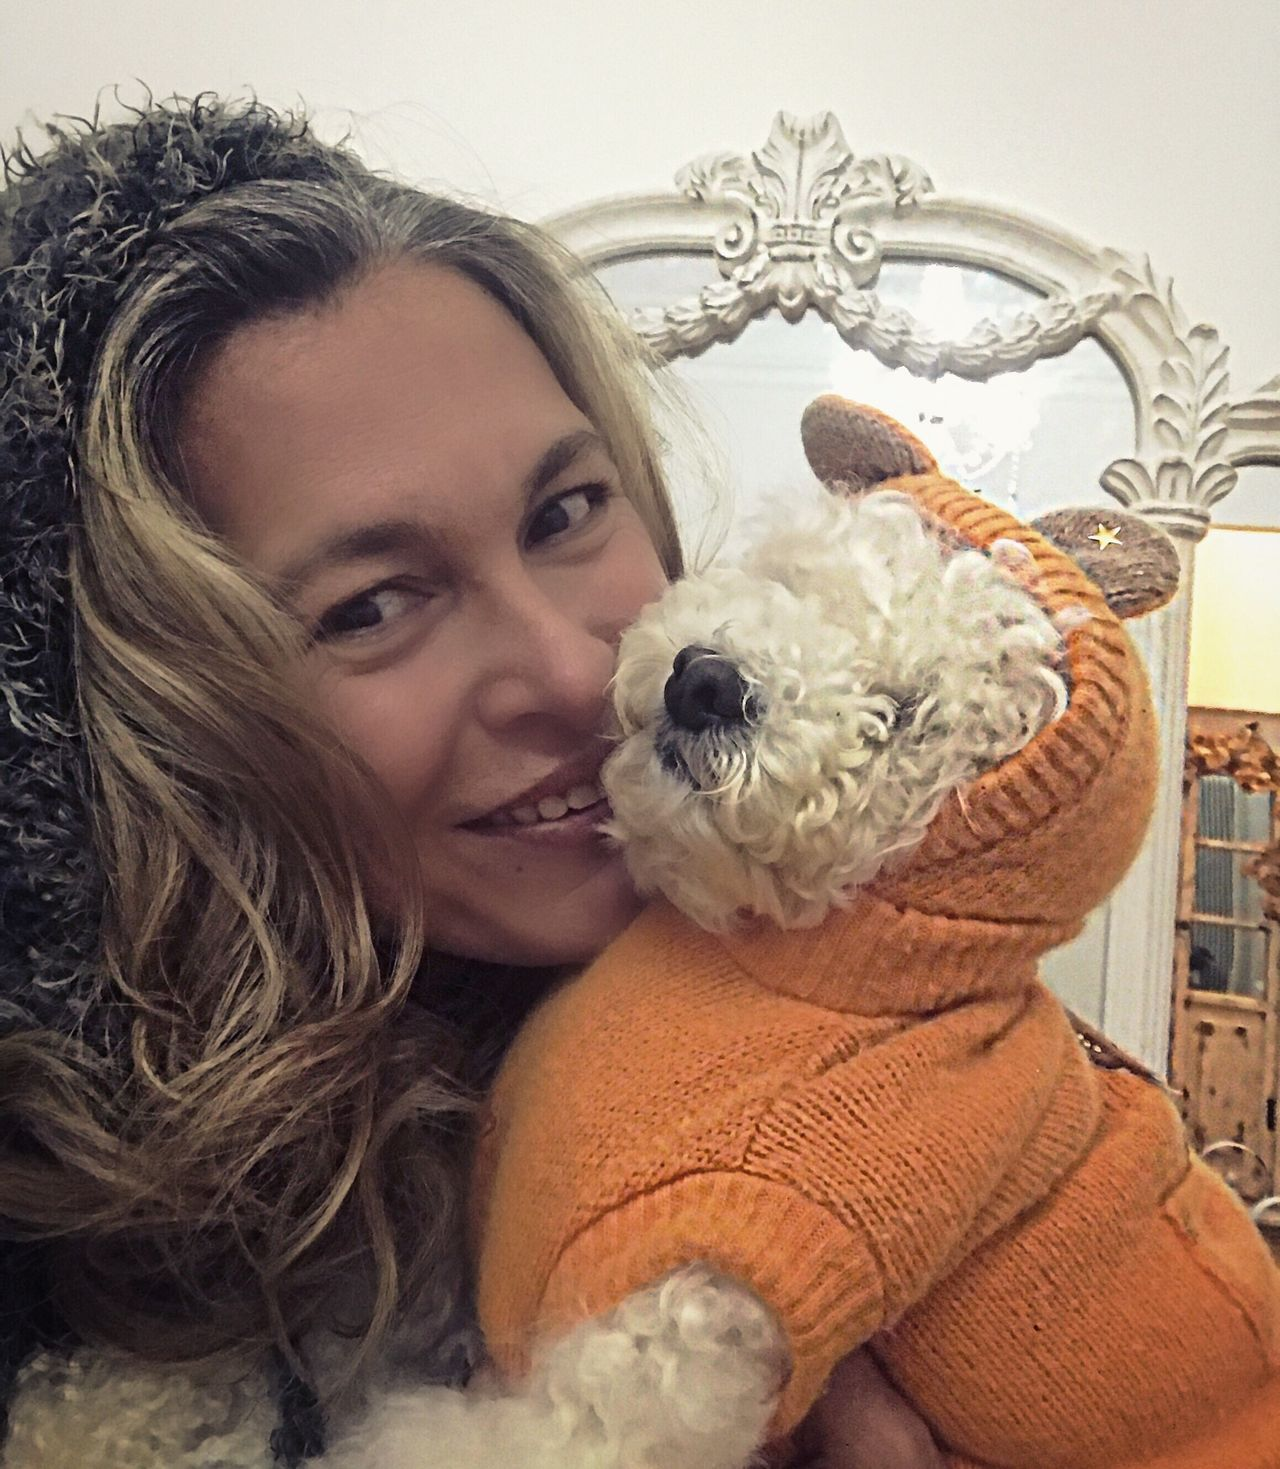 Looking At Camera Portrait Smiling Stuffed Toy Teddy Bear Headshot One Animal Young Women Happiness Pets Poodle Dressed Animal Themes Unconditional Love Kiss Hug Togetherness Loyalty Love